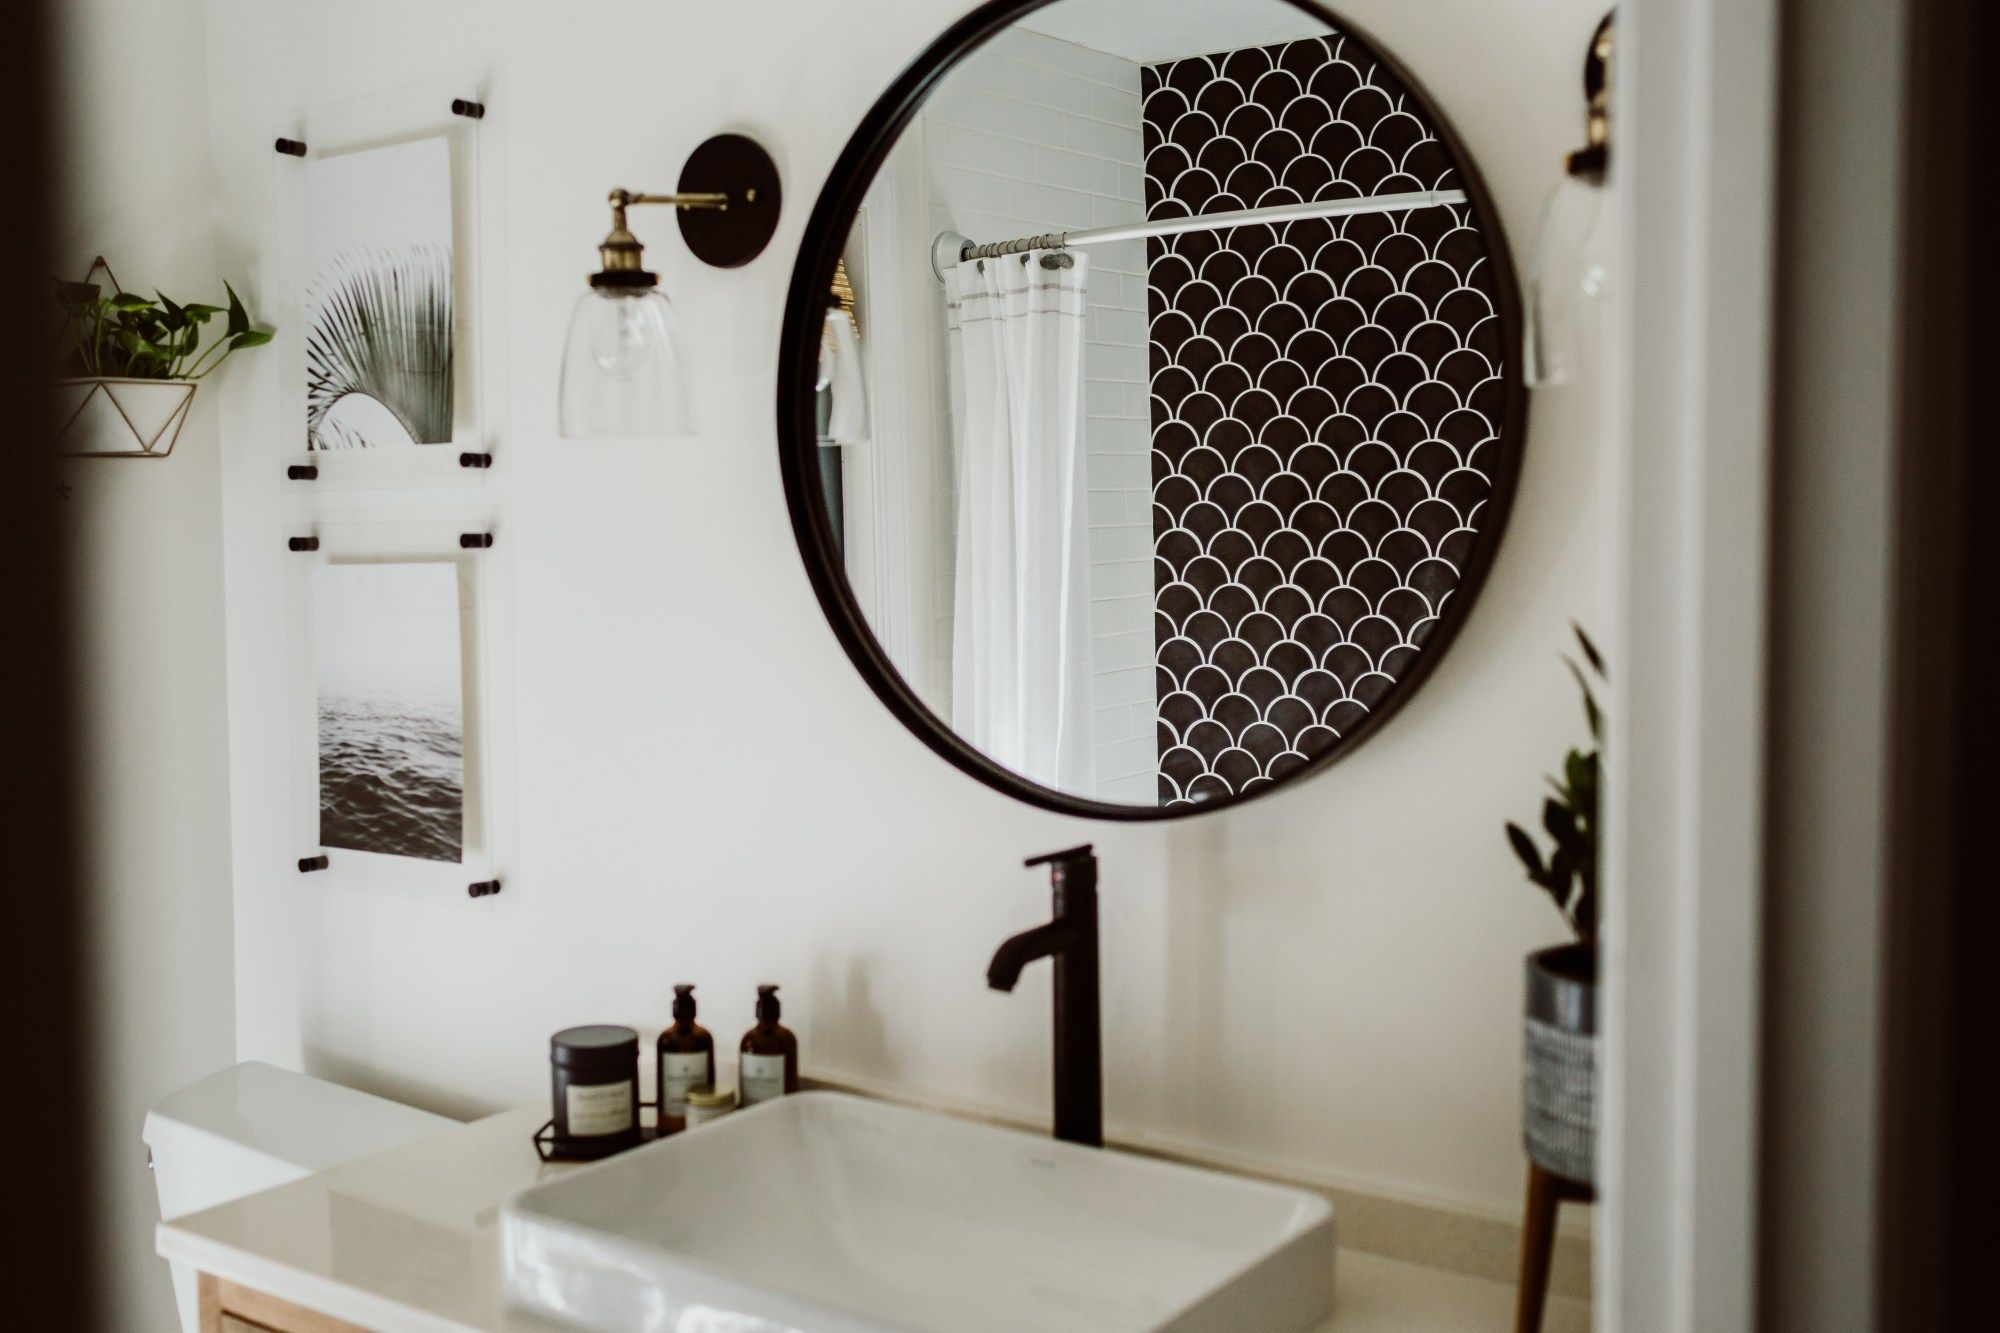 Modern Guest Bathroom Reveal: One Room Challenge, Week 6 - Within the Grove #whitebathroompaint